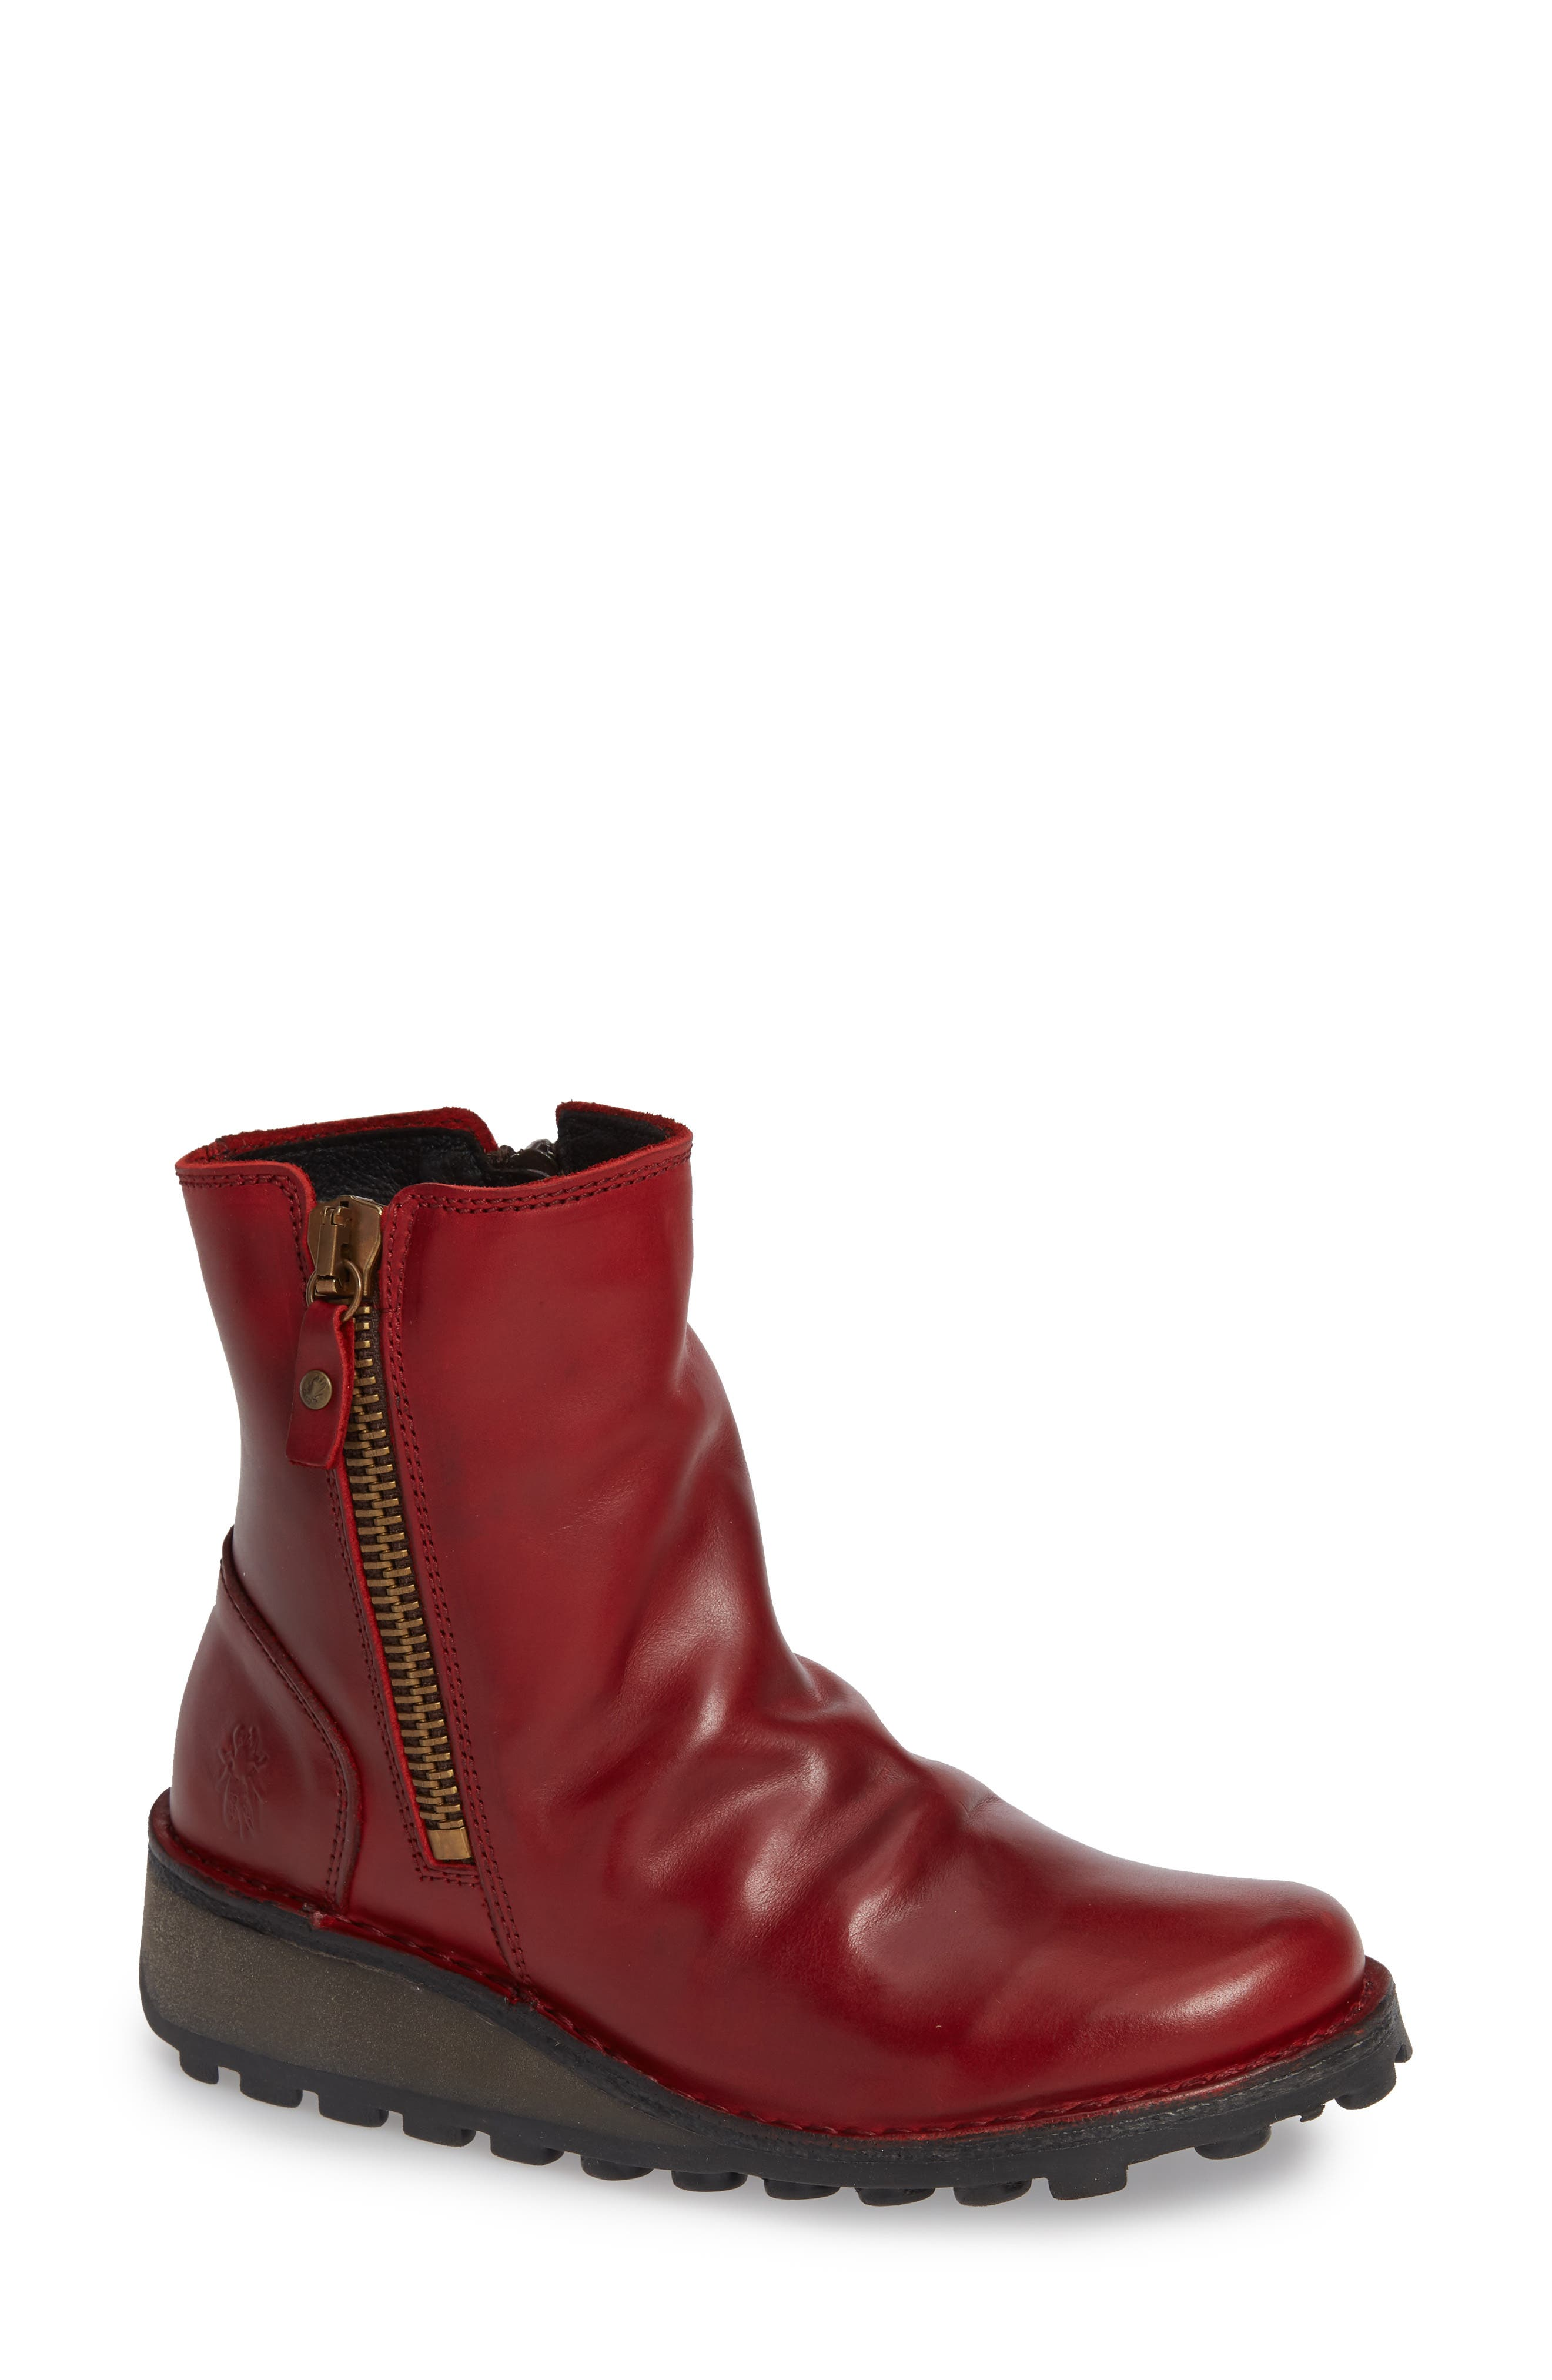 Mong Boot,                         Main,                         color, RED